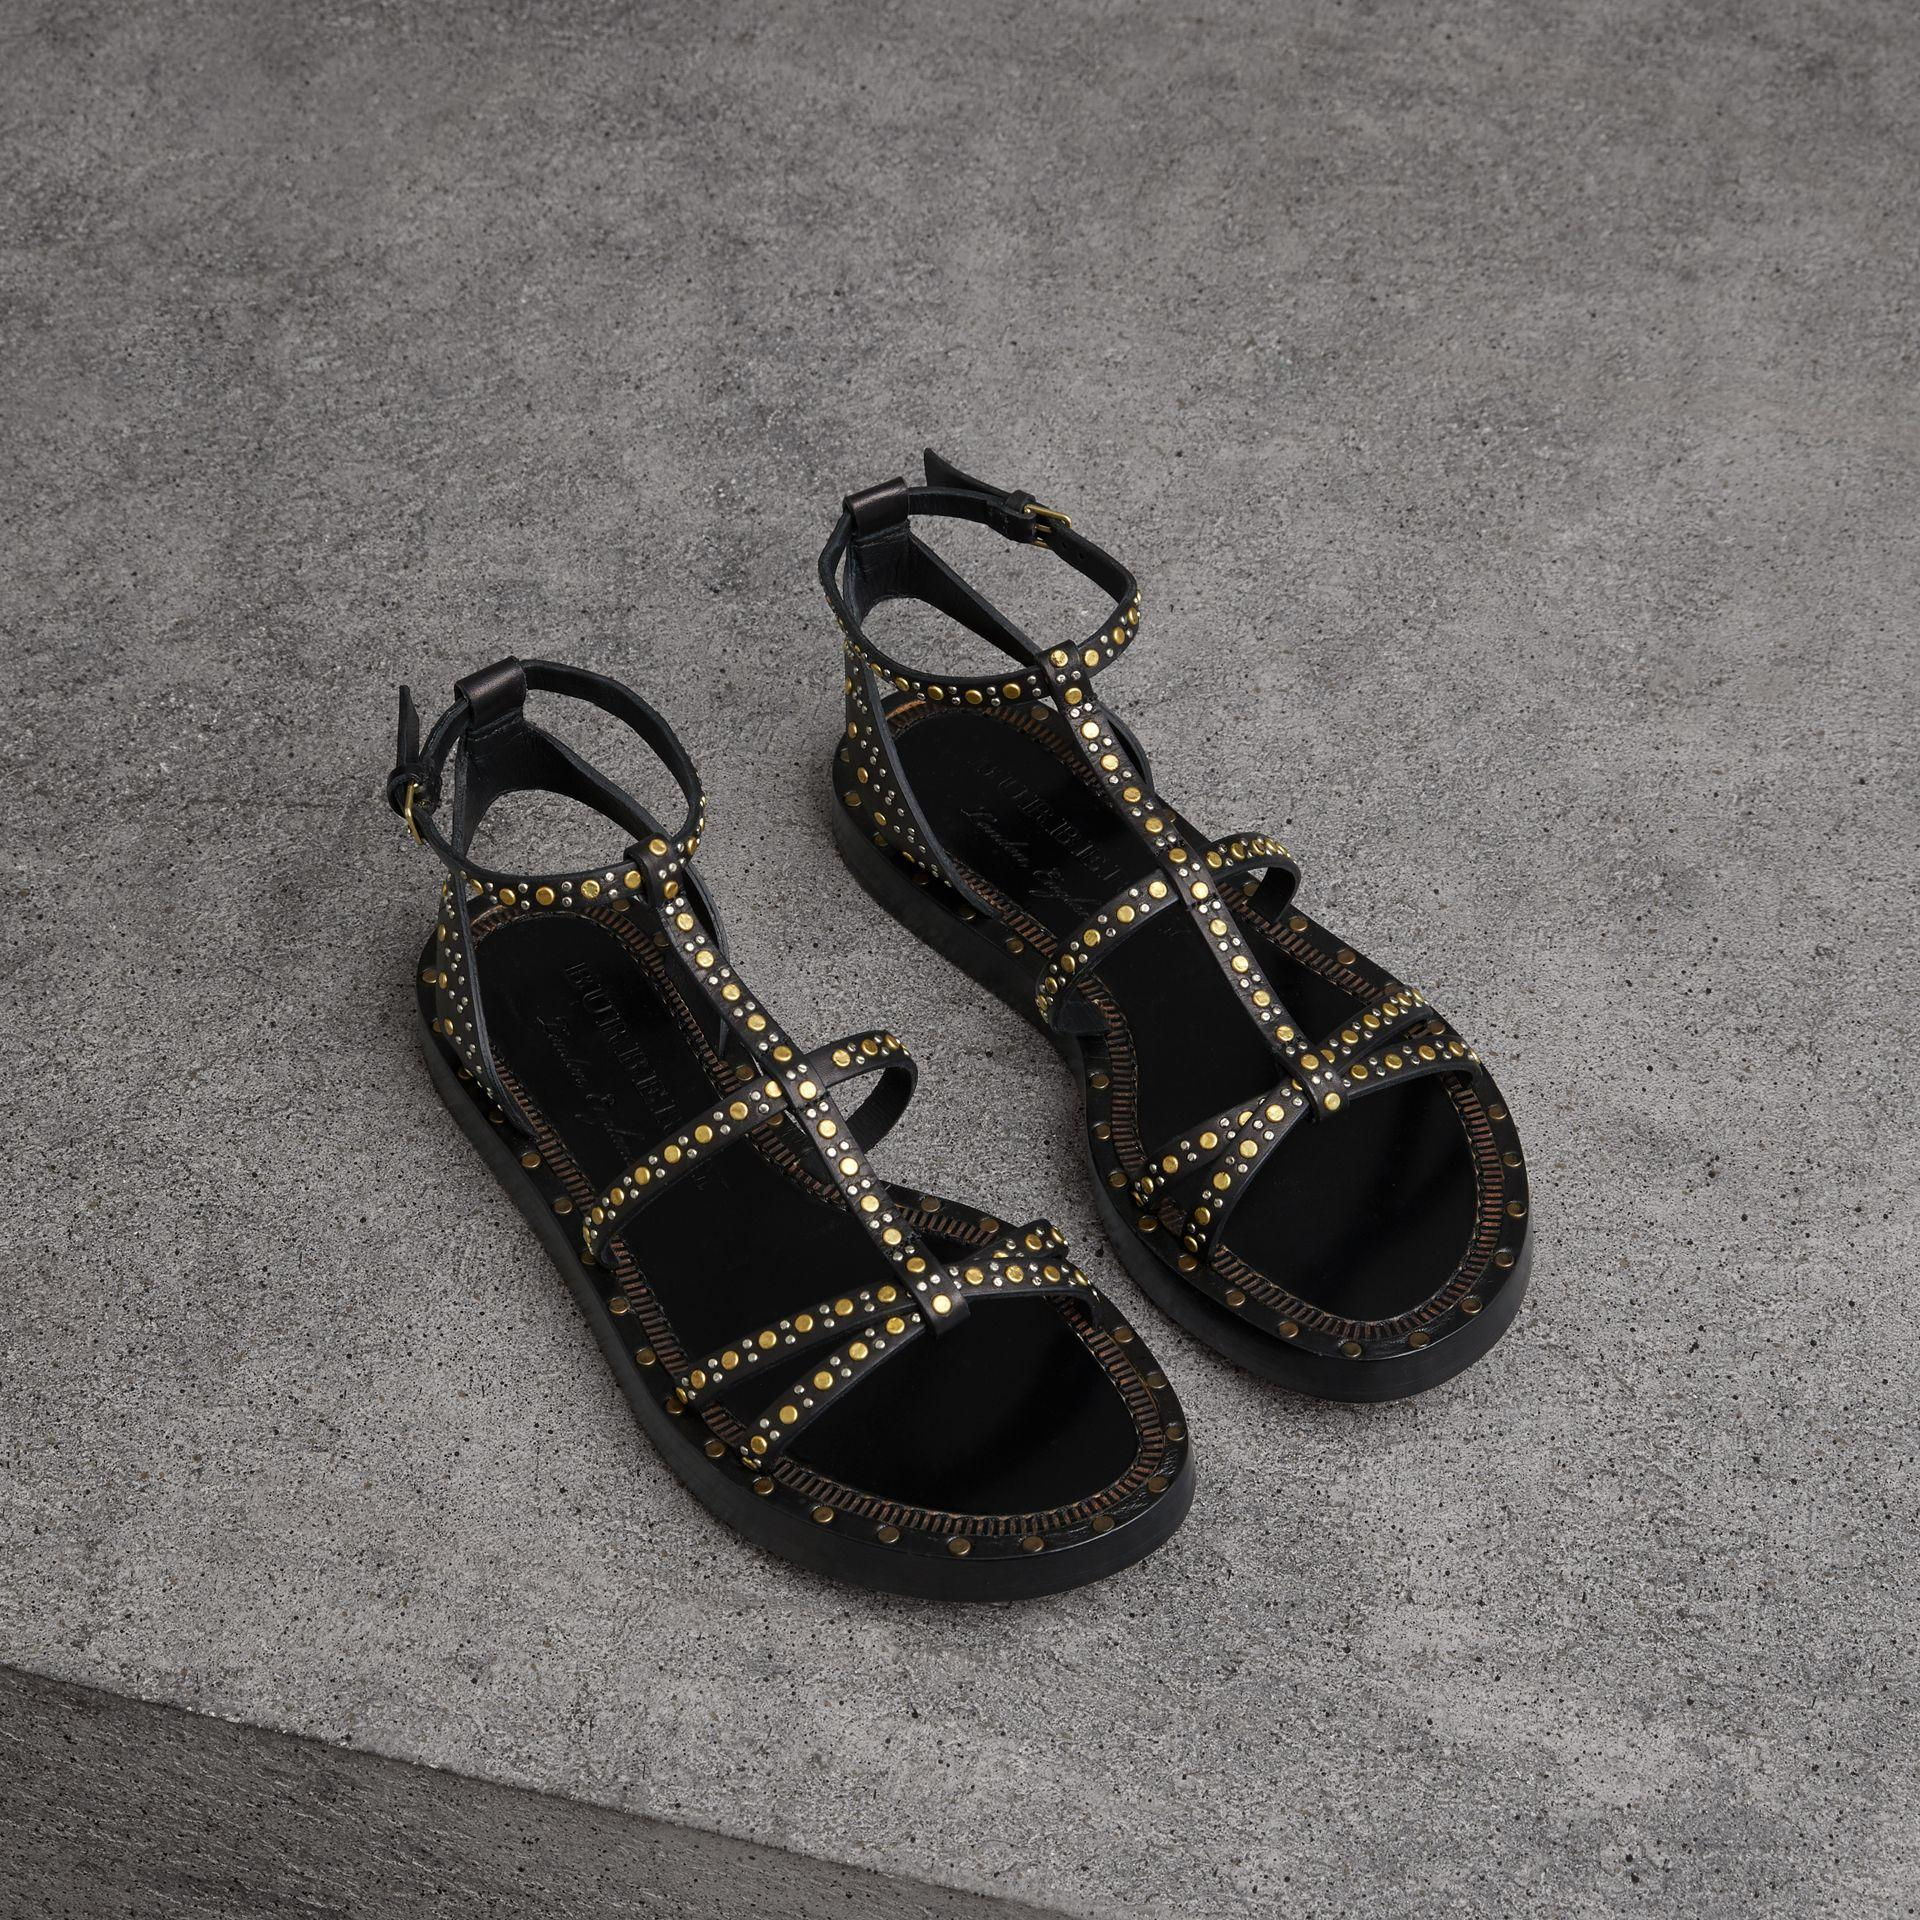 Burberry Riveted Leather Gladiator Sandals In Schwarz